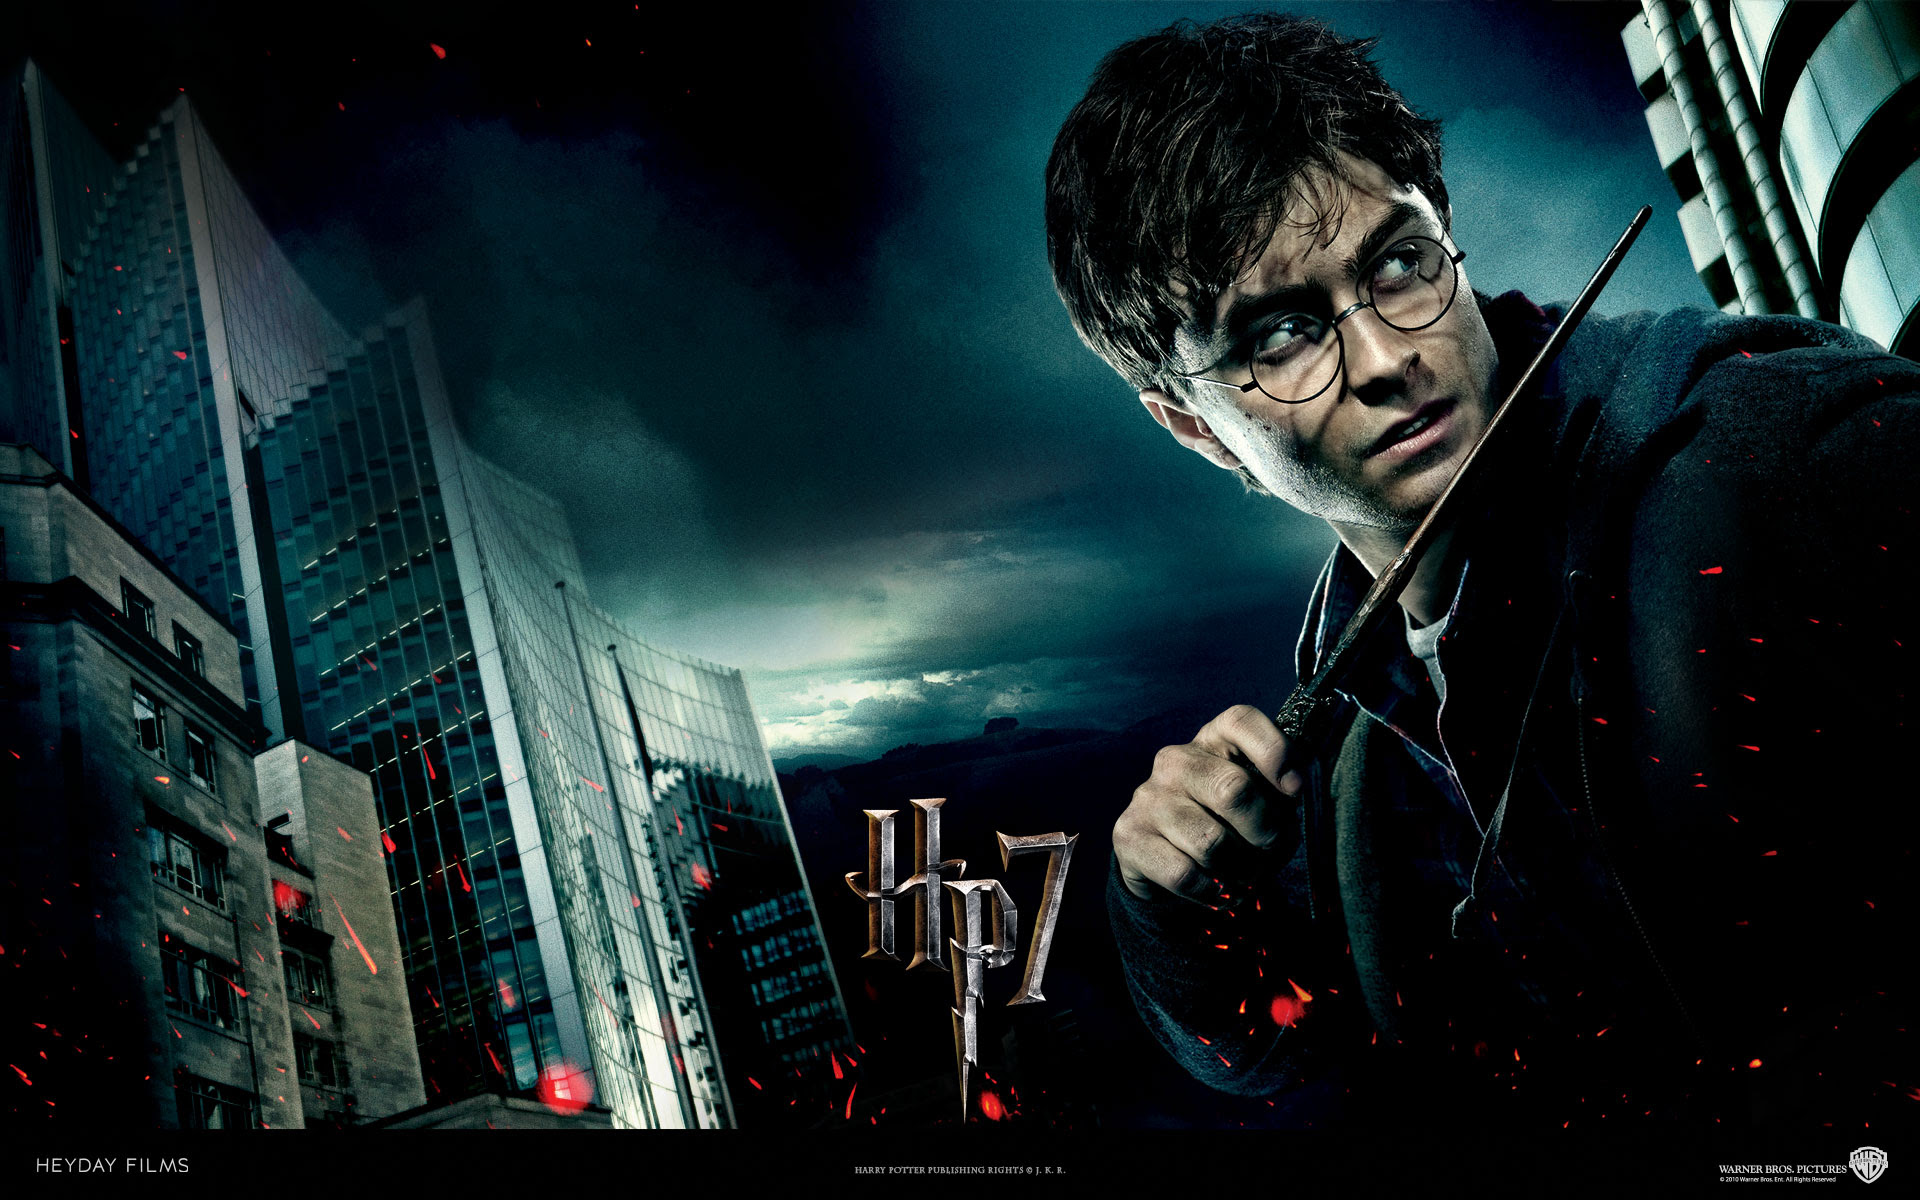 Harry Potter From Harry Potter And The Deathly Hallows Desktop